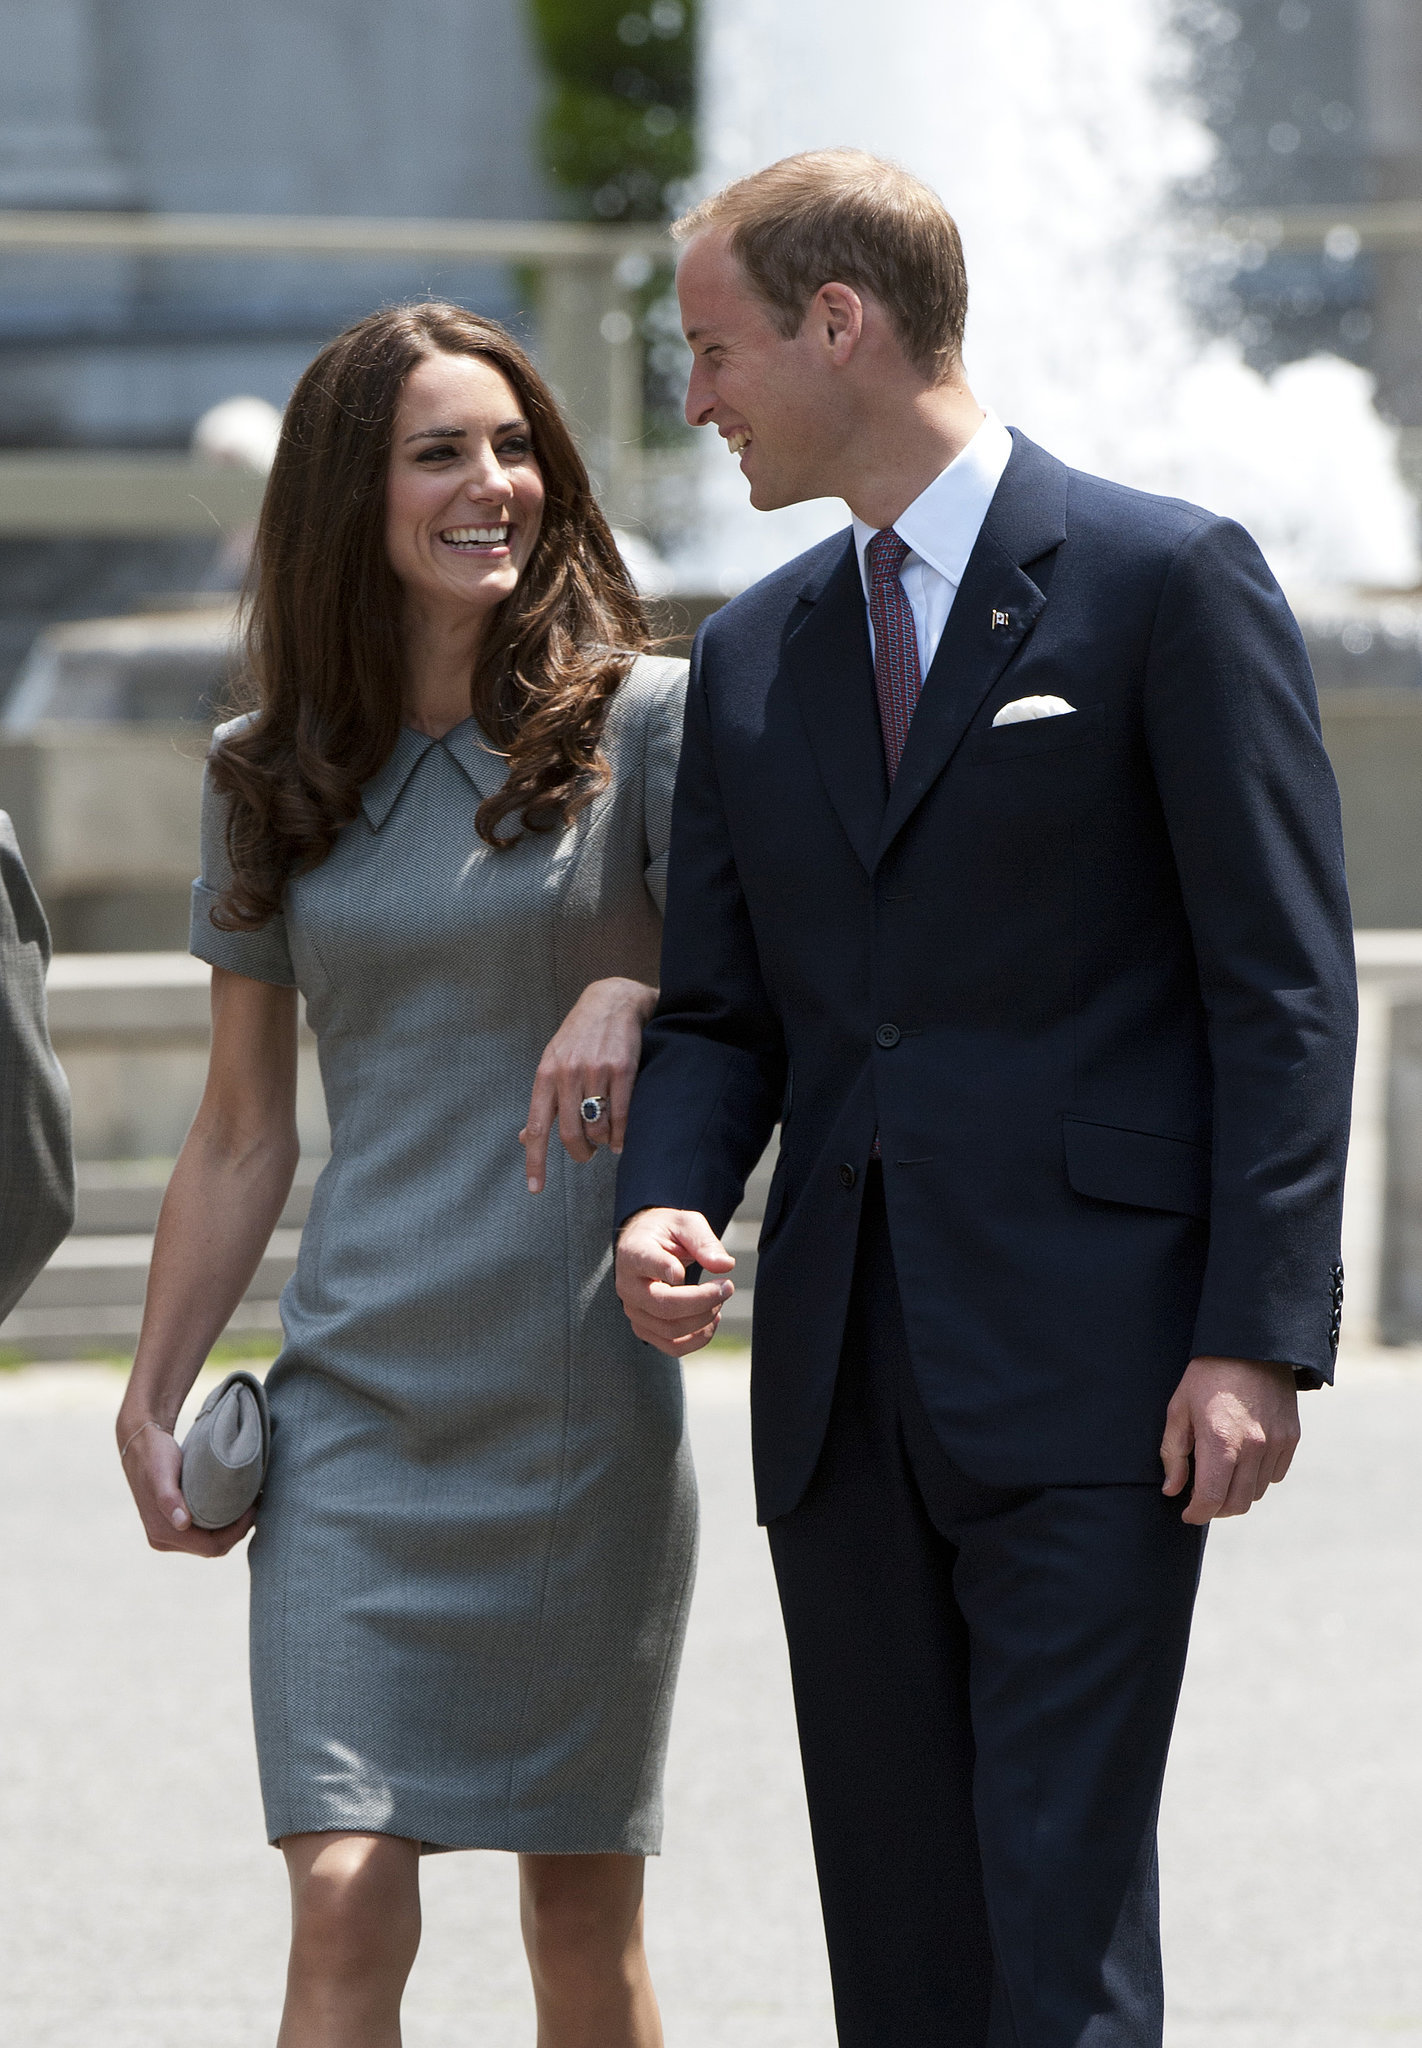 Prince William and Kate Middleton kept close during an appearance in Canada in July 2011.